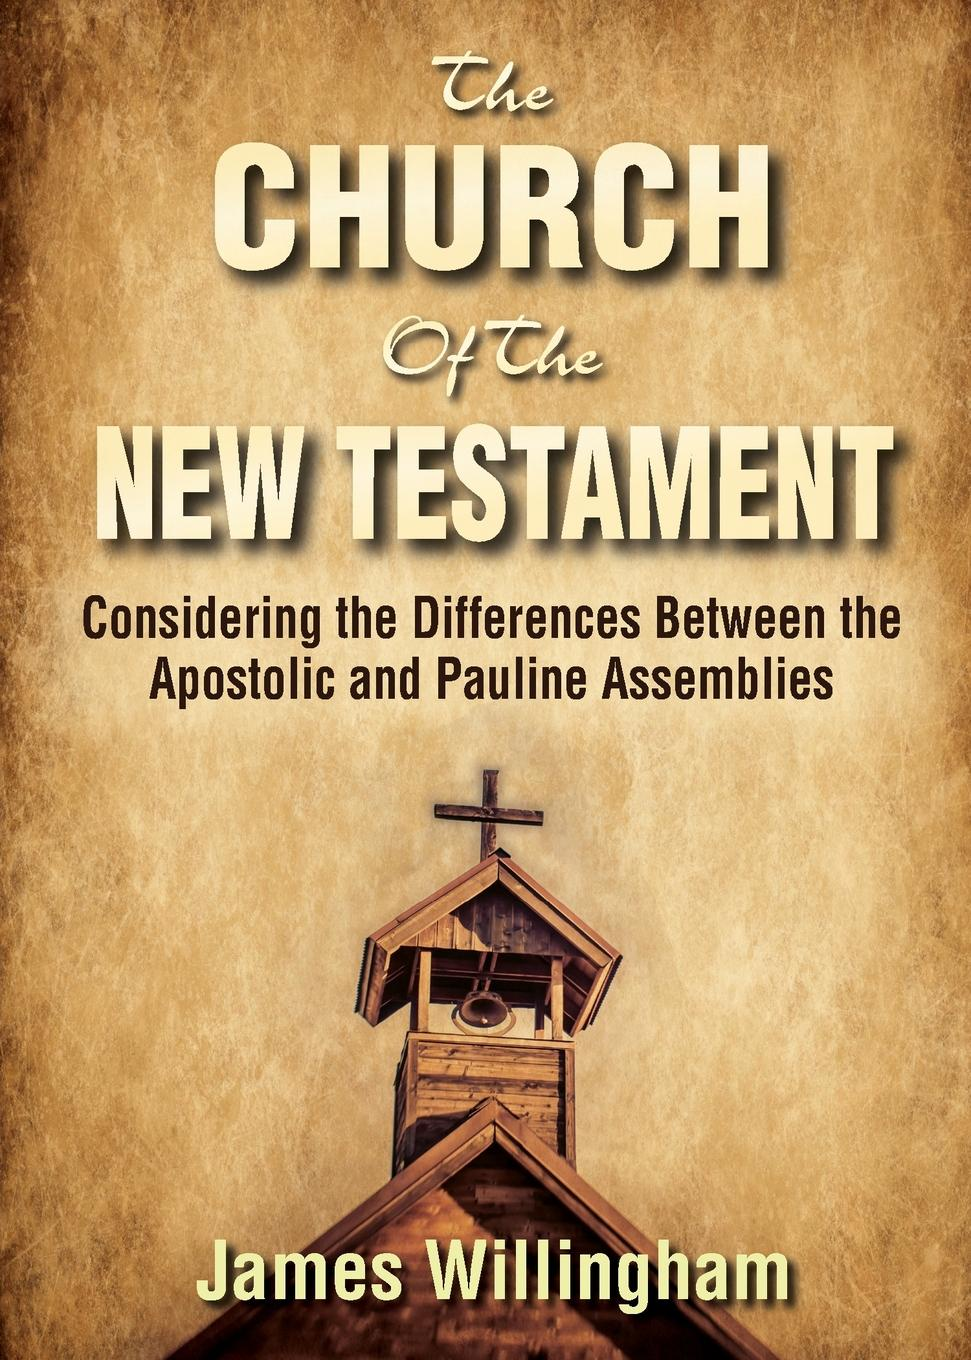 The Church of the New Testament. Considering the Differences Between the Apostolic and the Pauline Assemblies